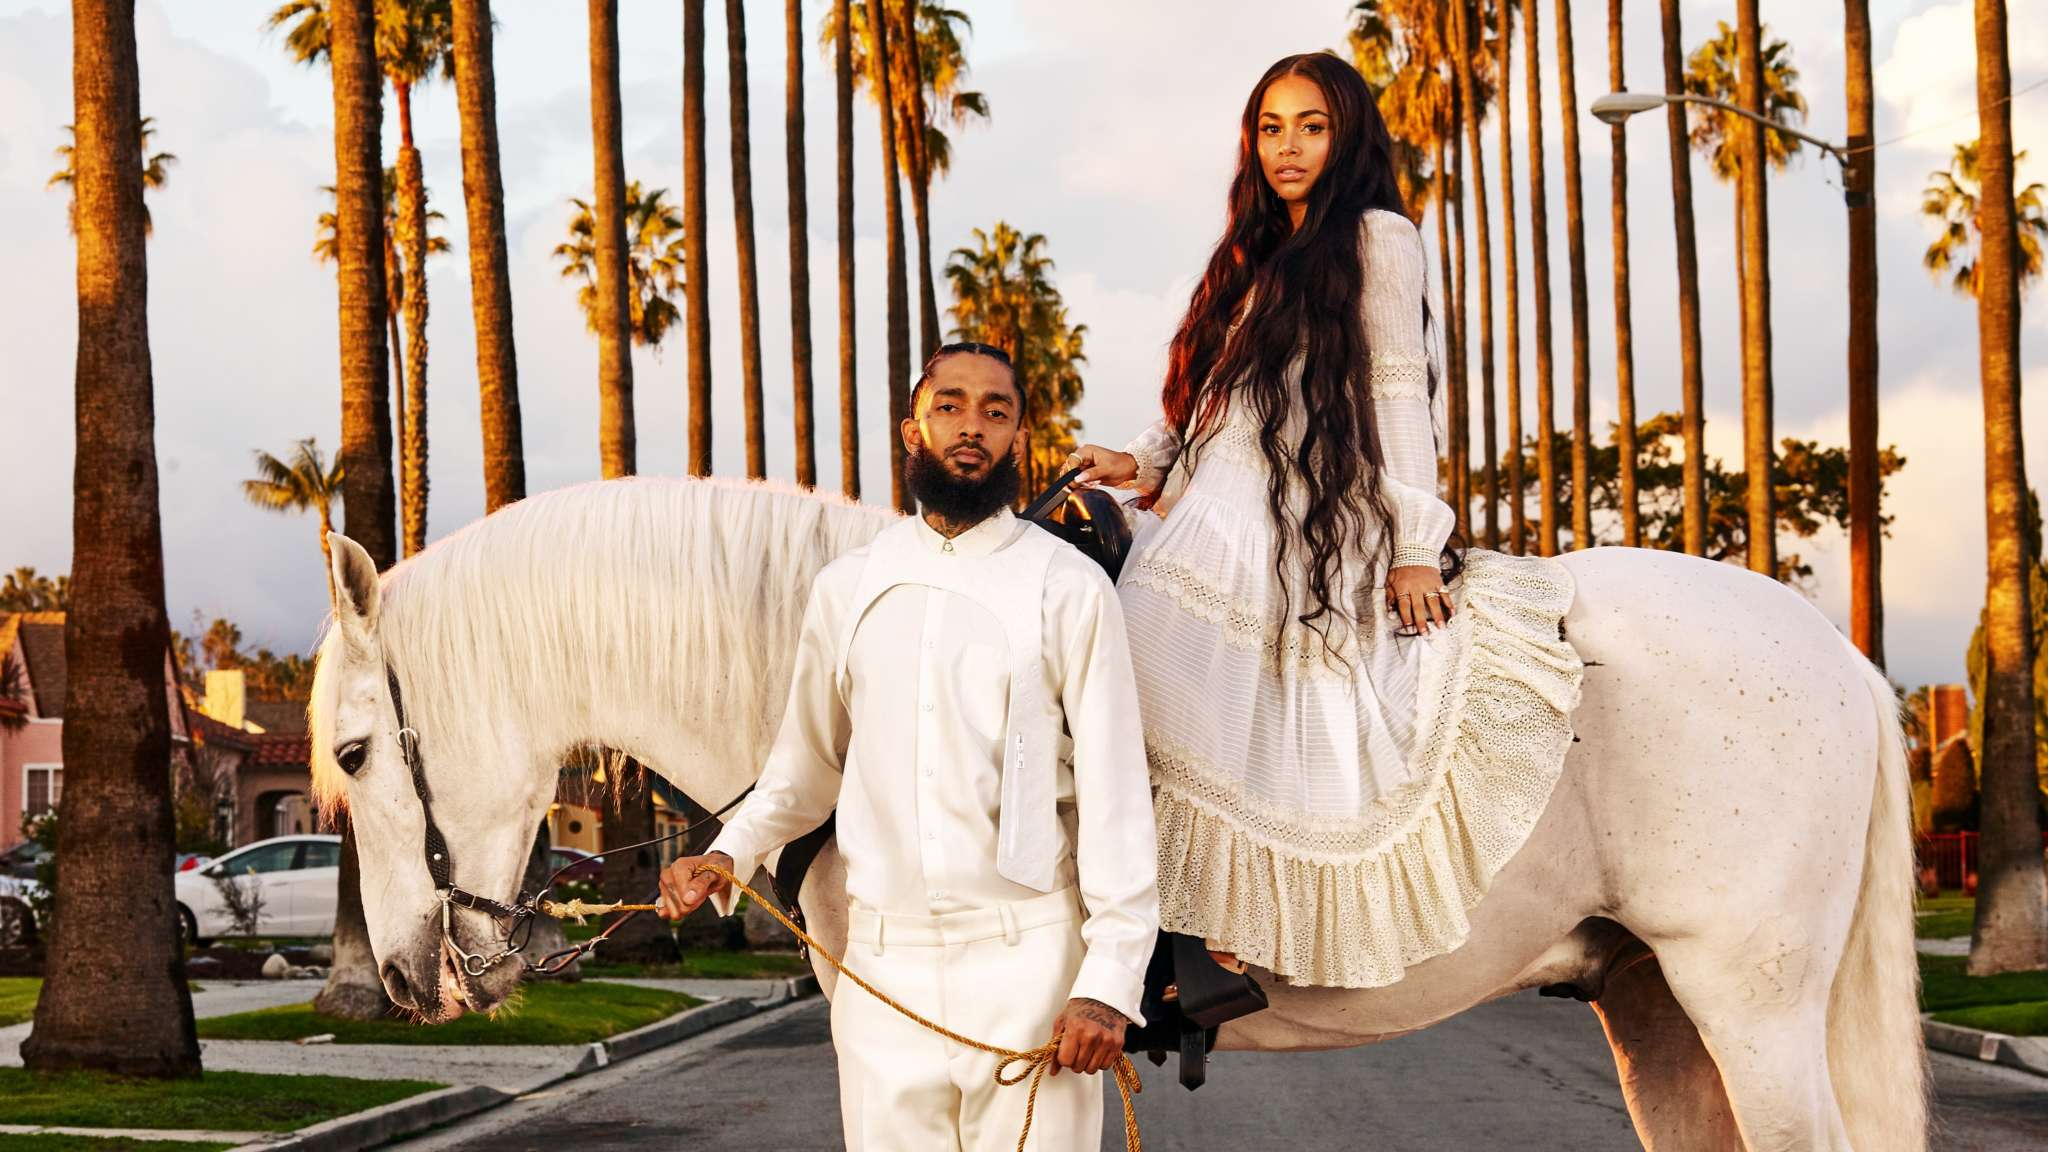 """lauren-london-posts-heartbreaking-quote-months-after-nipsey-hussles-passing"""